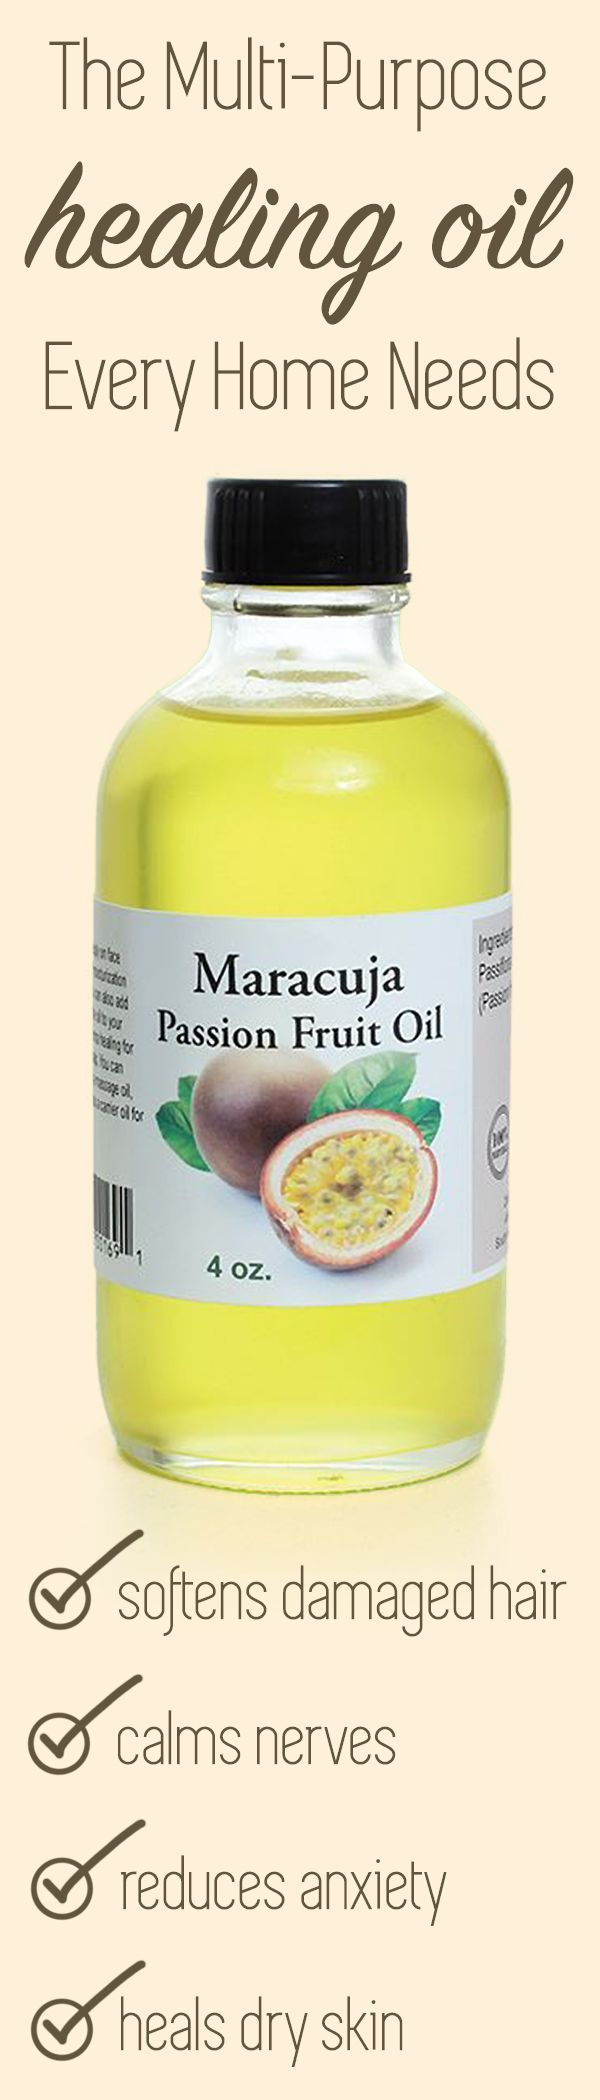 The Multi-Purpose healing oil that every home needs!  Maracuja Passion Fruit Oil is perfect for physical ailments like healing dry skin and softening damaged hair, but it also acts as an aroma therapy, helping to calm nerves and reduce anxiety.  This multi-purpose natural oil is perfect for keeping in the medicine cabinet as a natural remedy for many uses safe for kids and adults.  #naturalremedy #naturalremedies #heal #natural #nontoxic #healthy #haircare #naturalhaircare #naturalhair